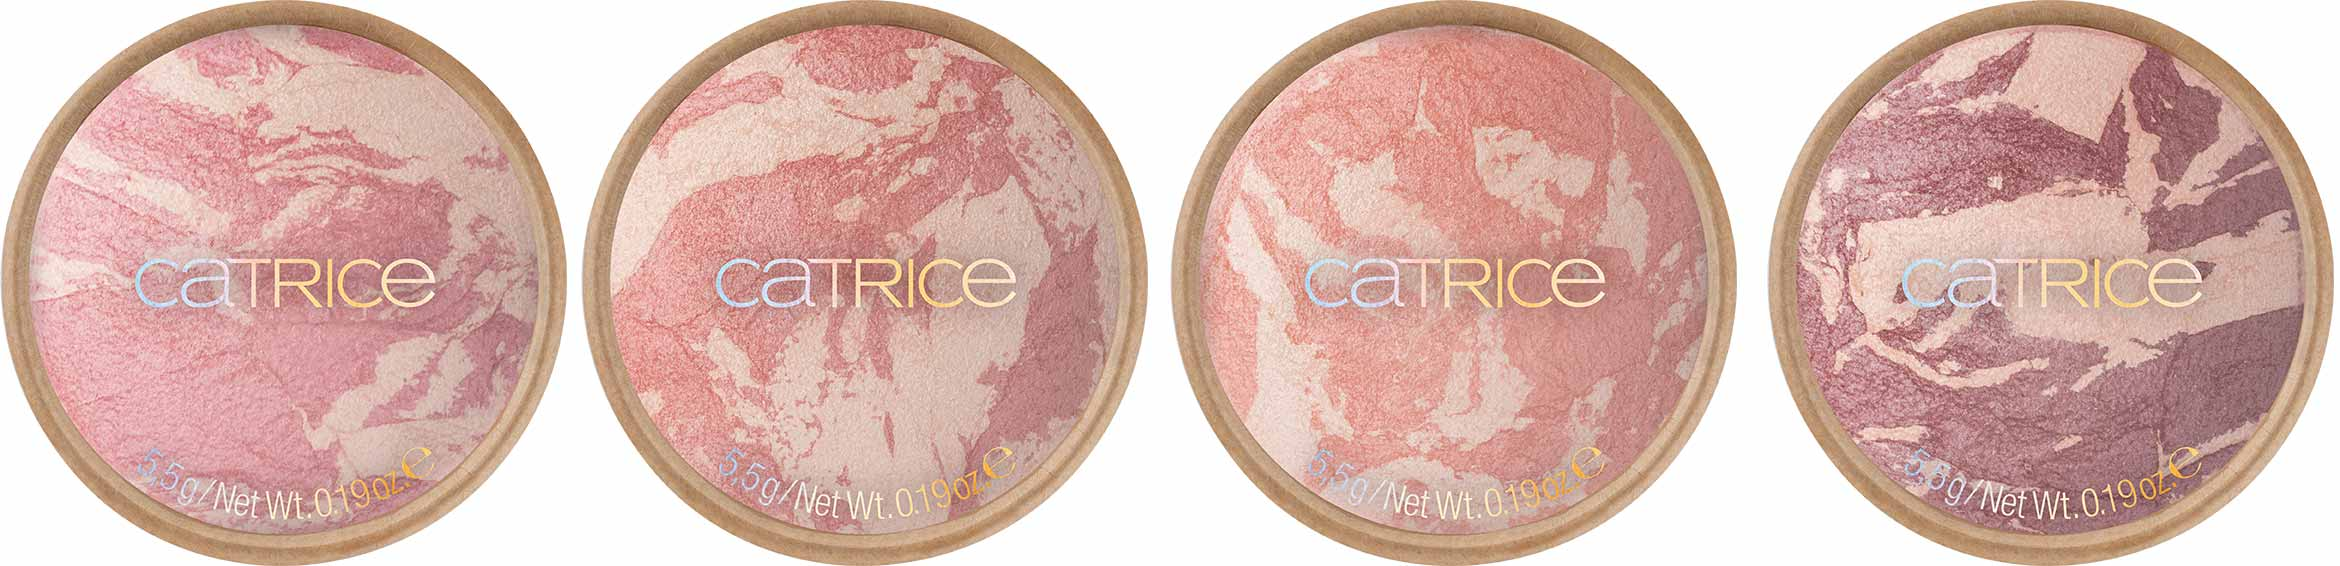 catrice-pure-simplicity-baked-blush